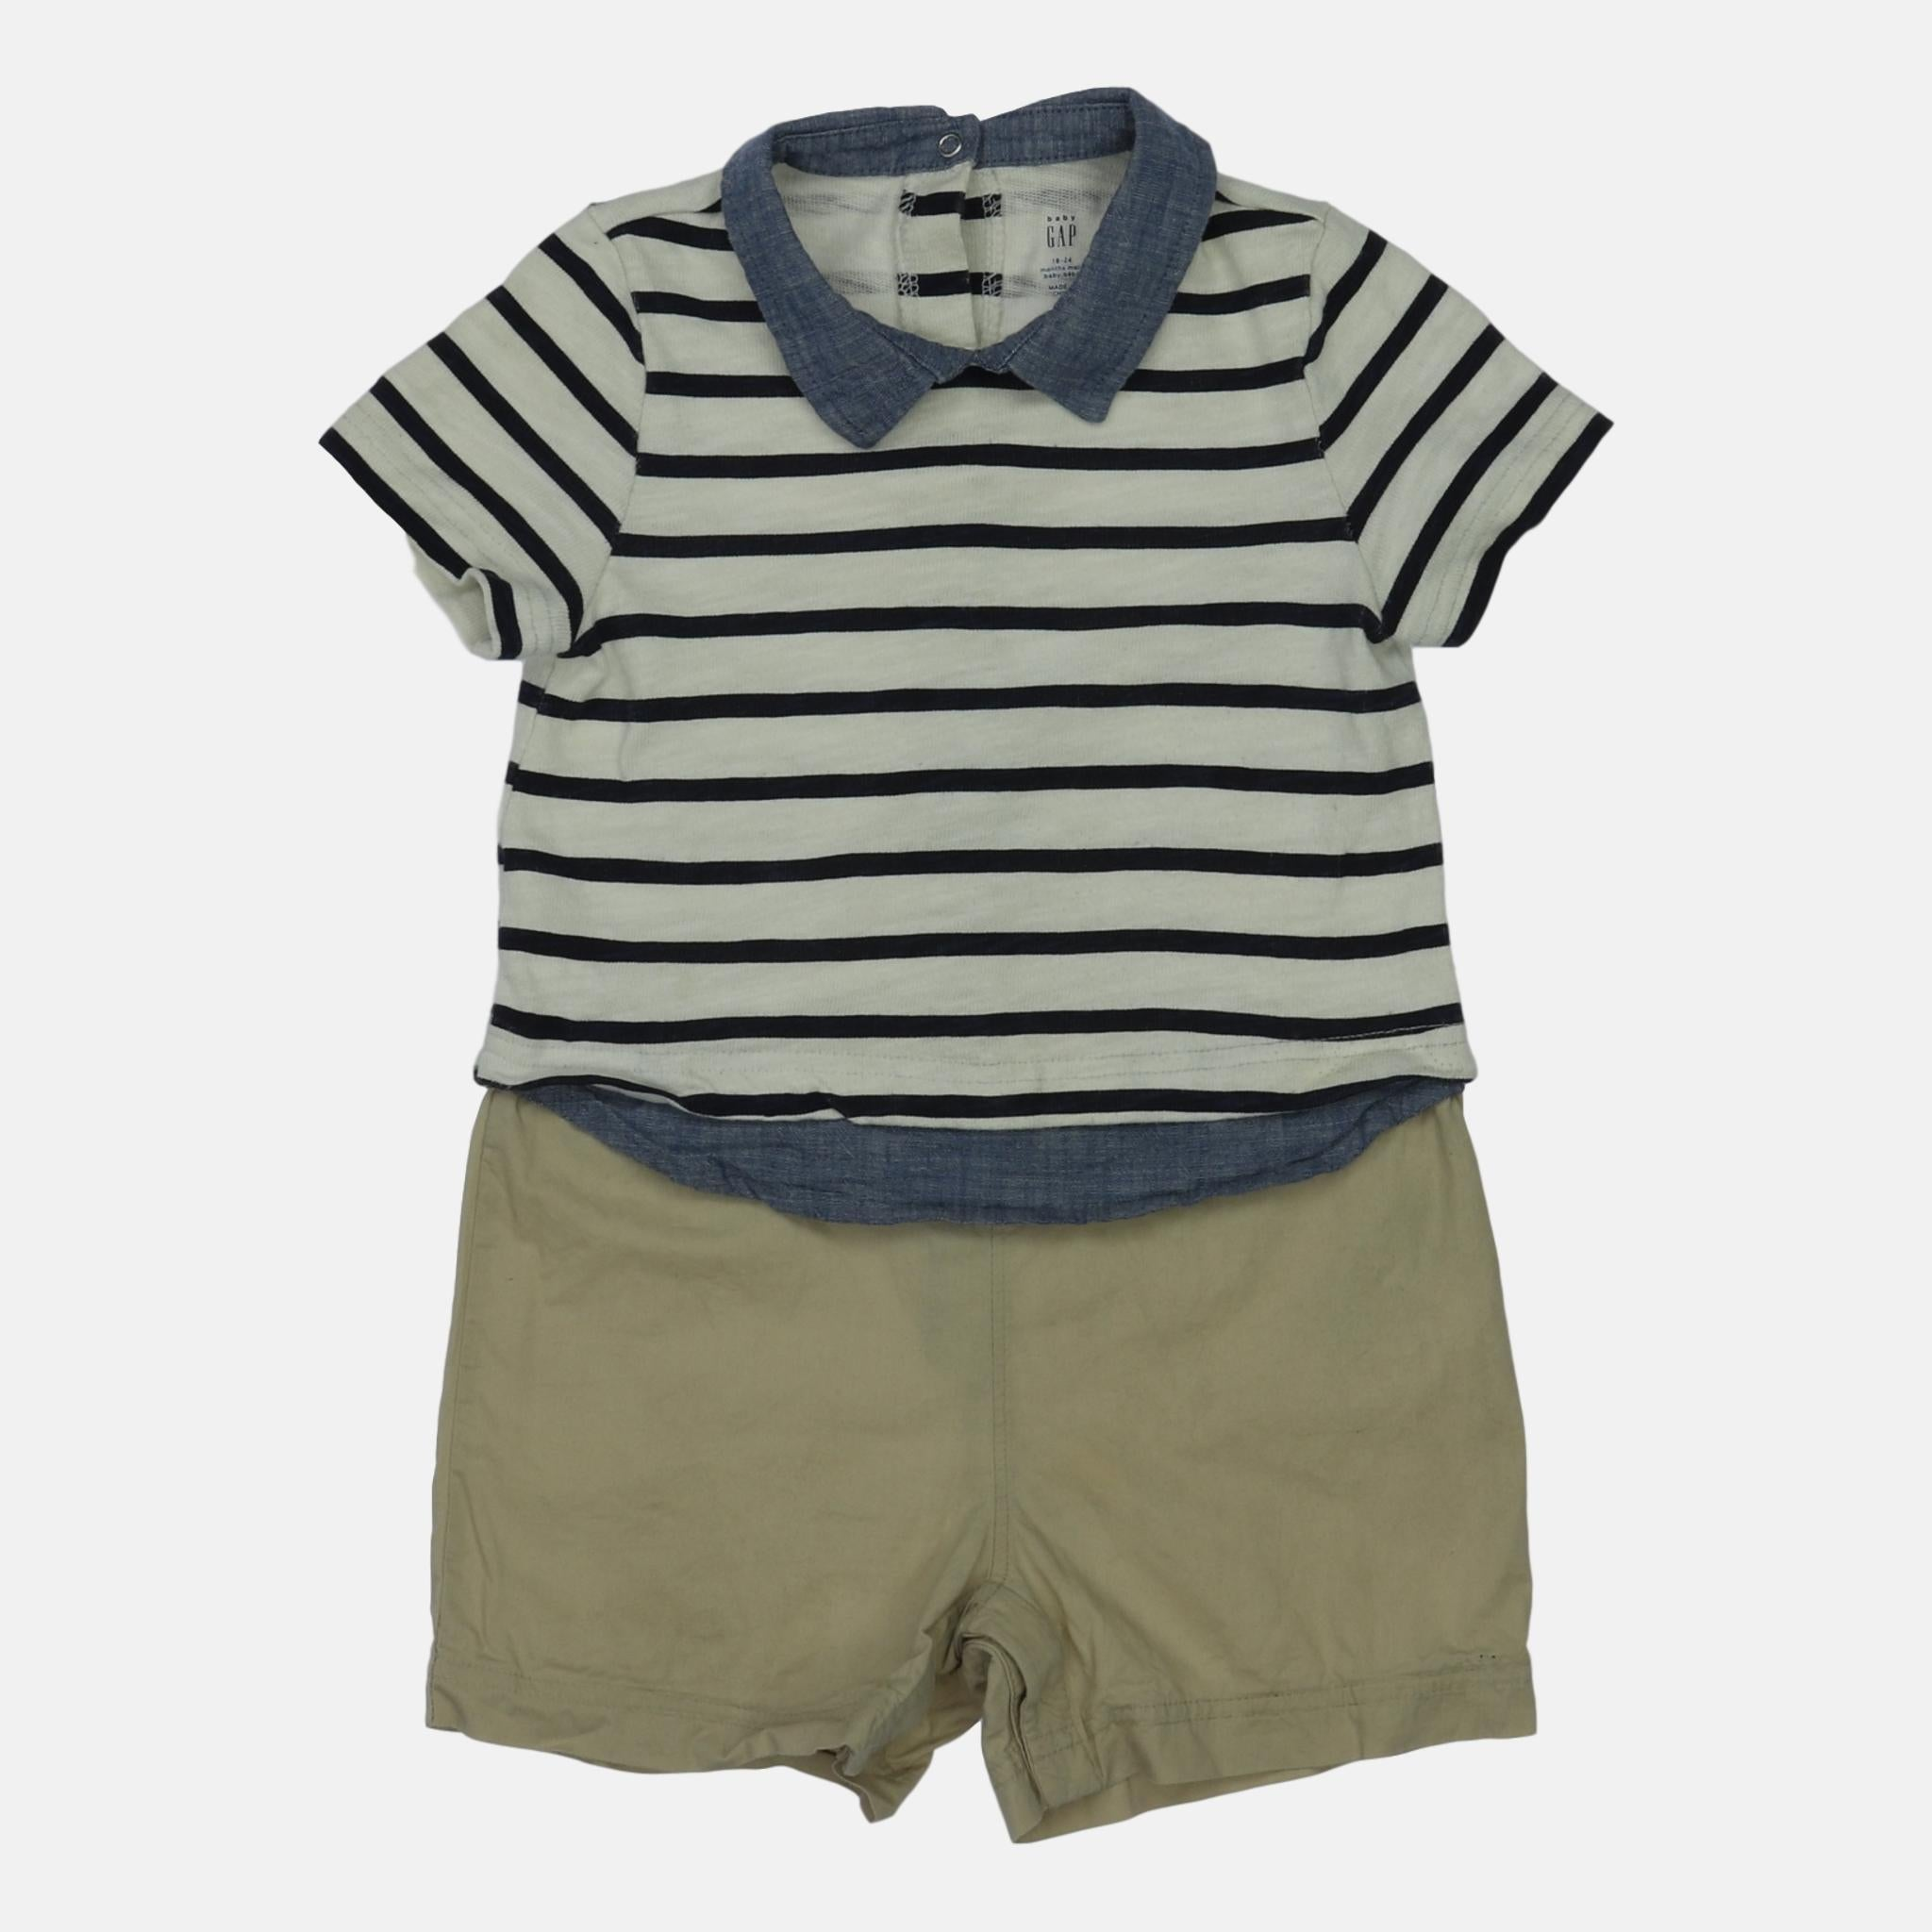 Playsuit, 18-24 Months